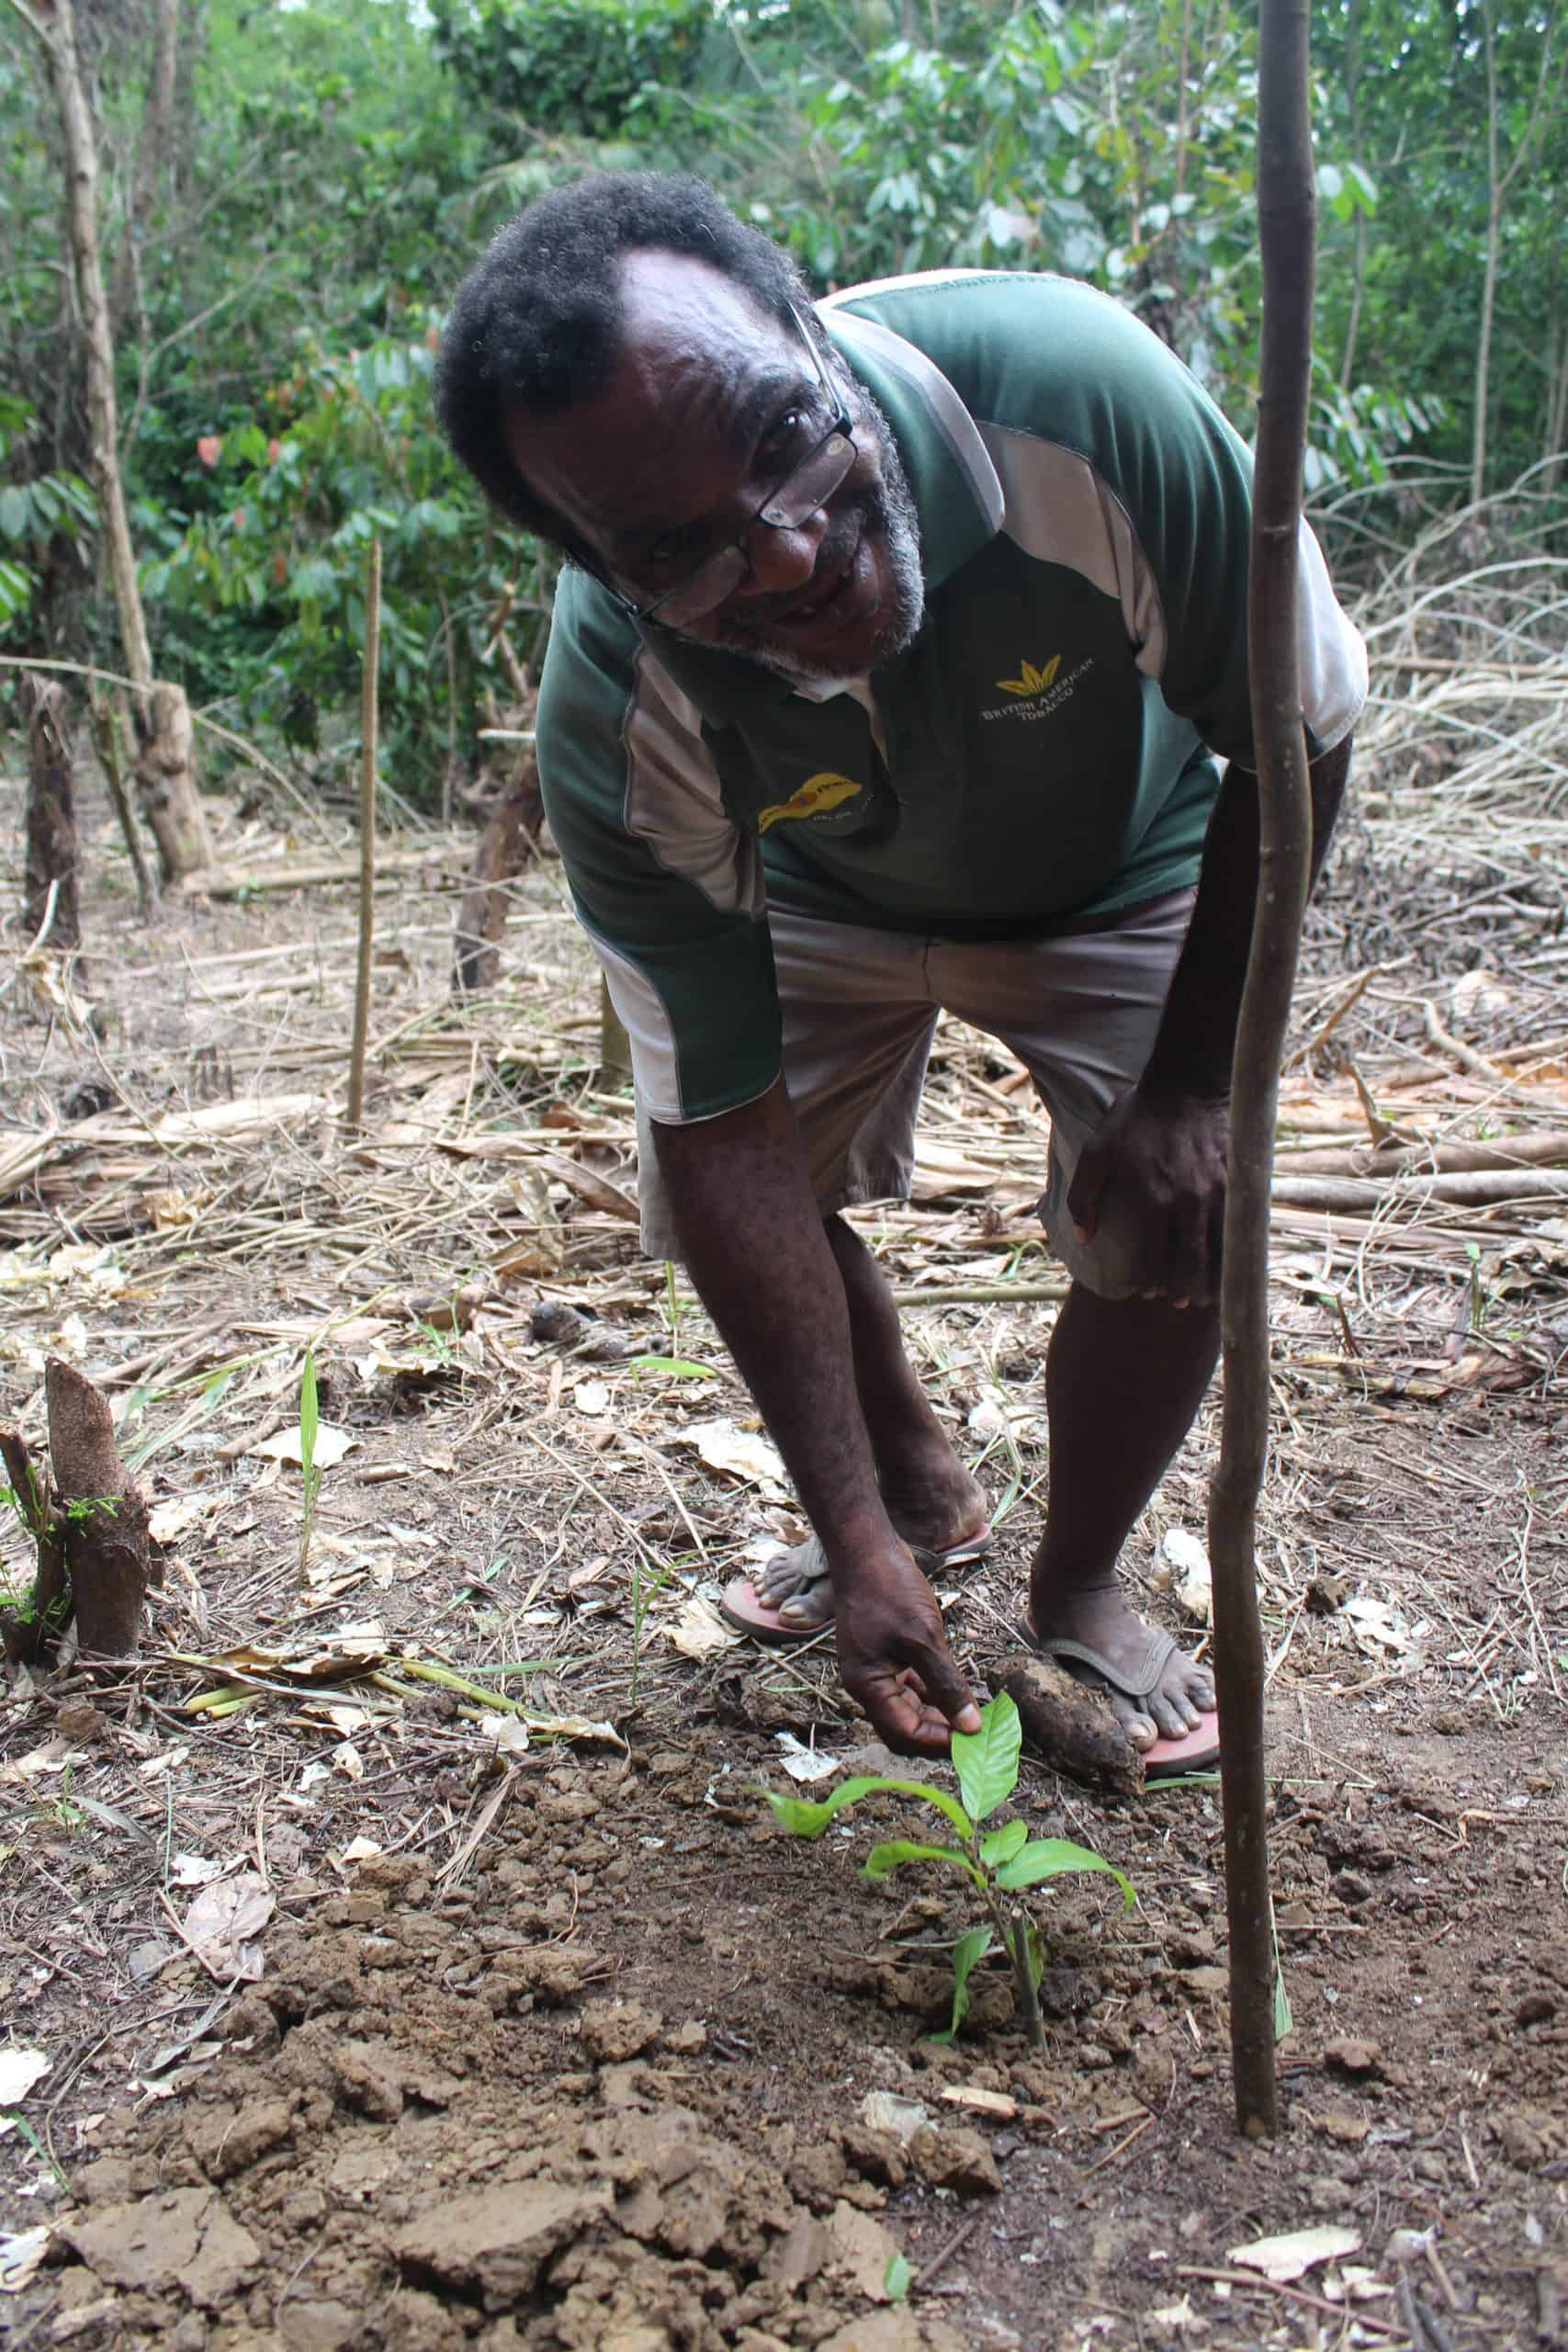 Sustainability, cocoa sustainability, sustainable cocoa, why is sustainability important, sustainability defined, sustainability movement, cocoa plant, cocoa bean, cacao, raw cacao, deforestation, what is deforestation Sustainable cocoa farmer in Papua New Guinea